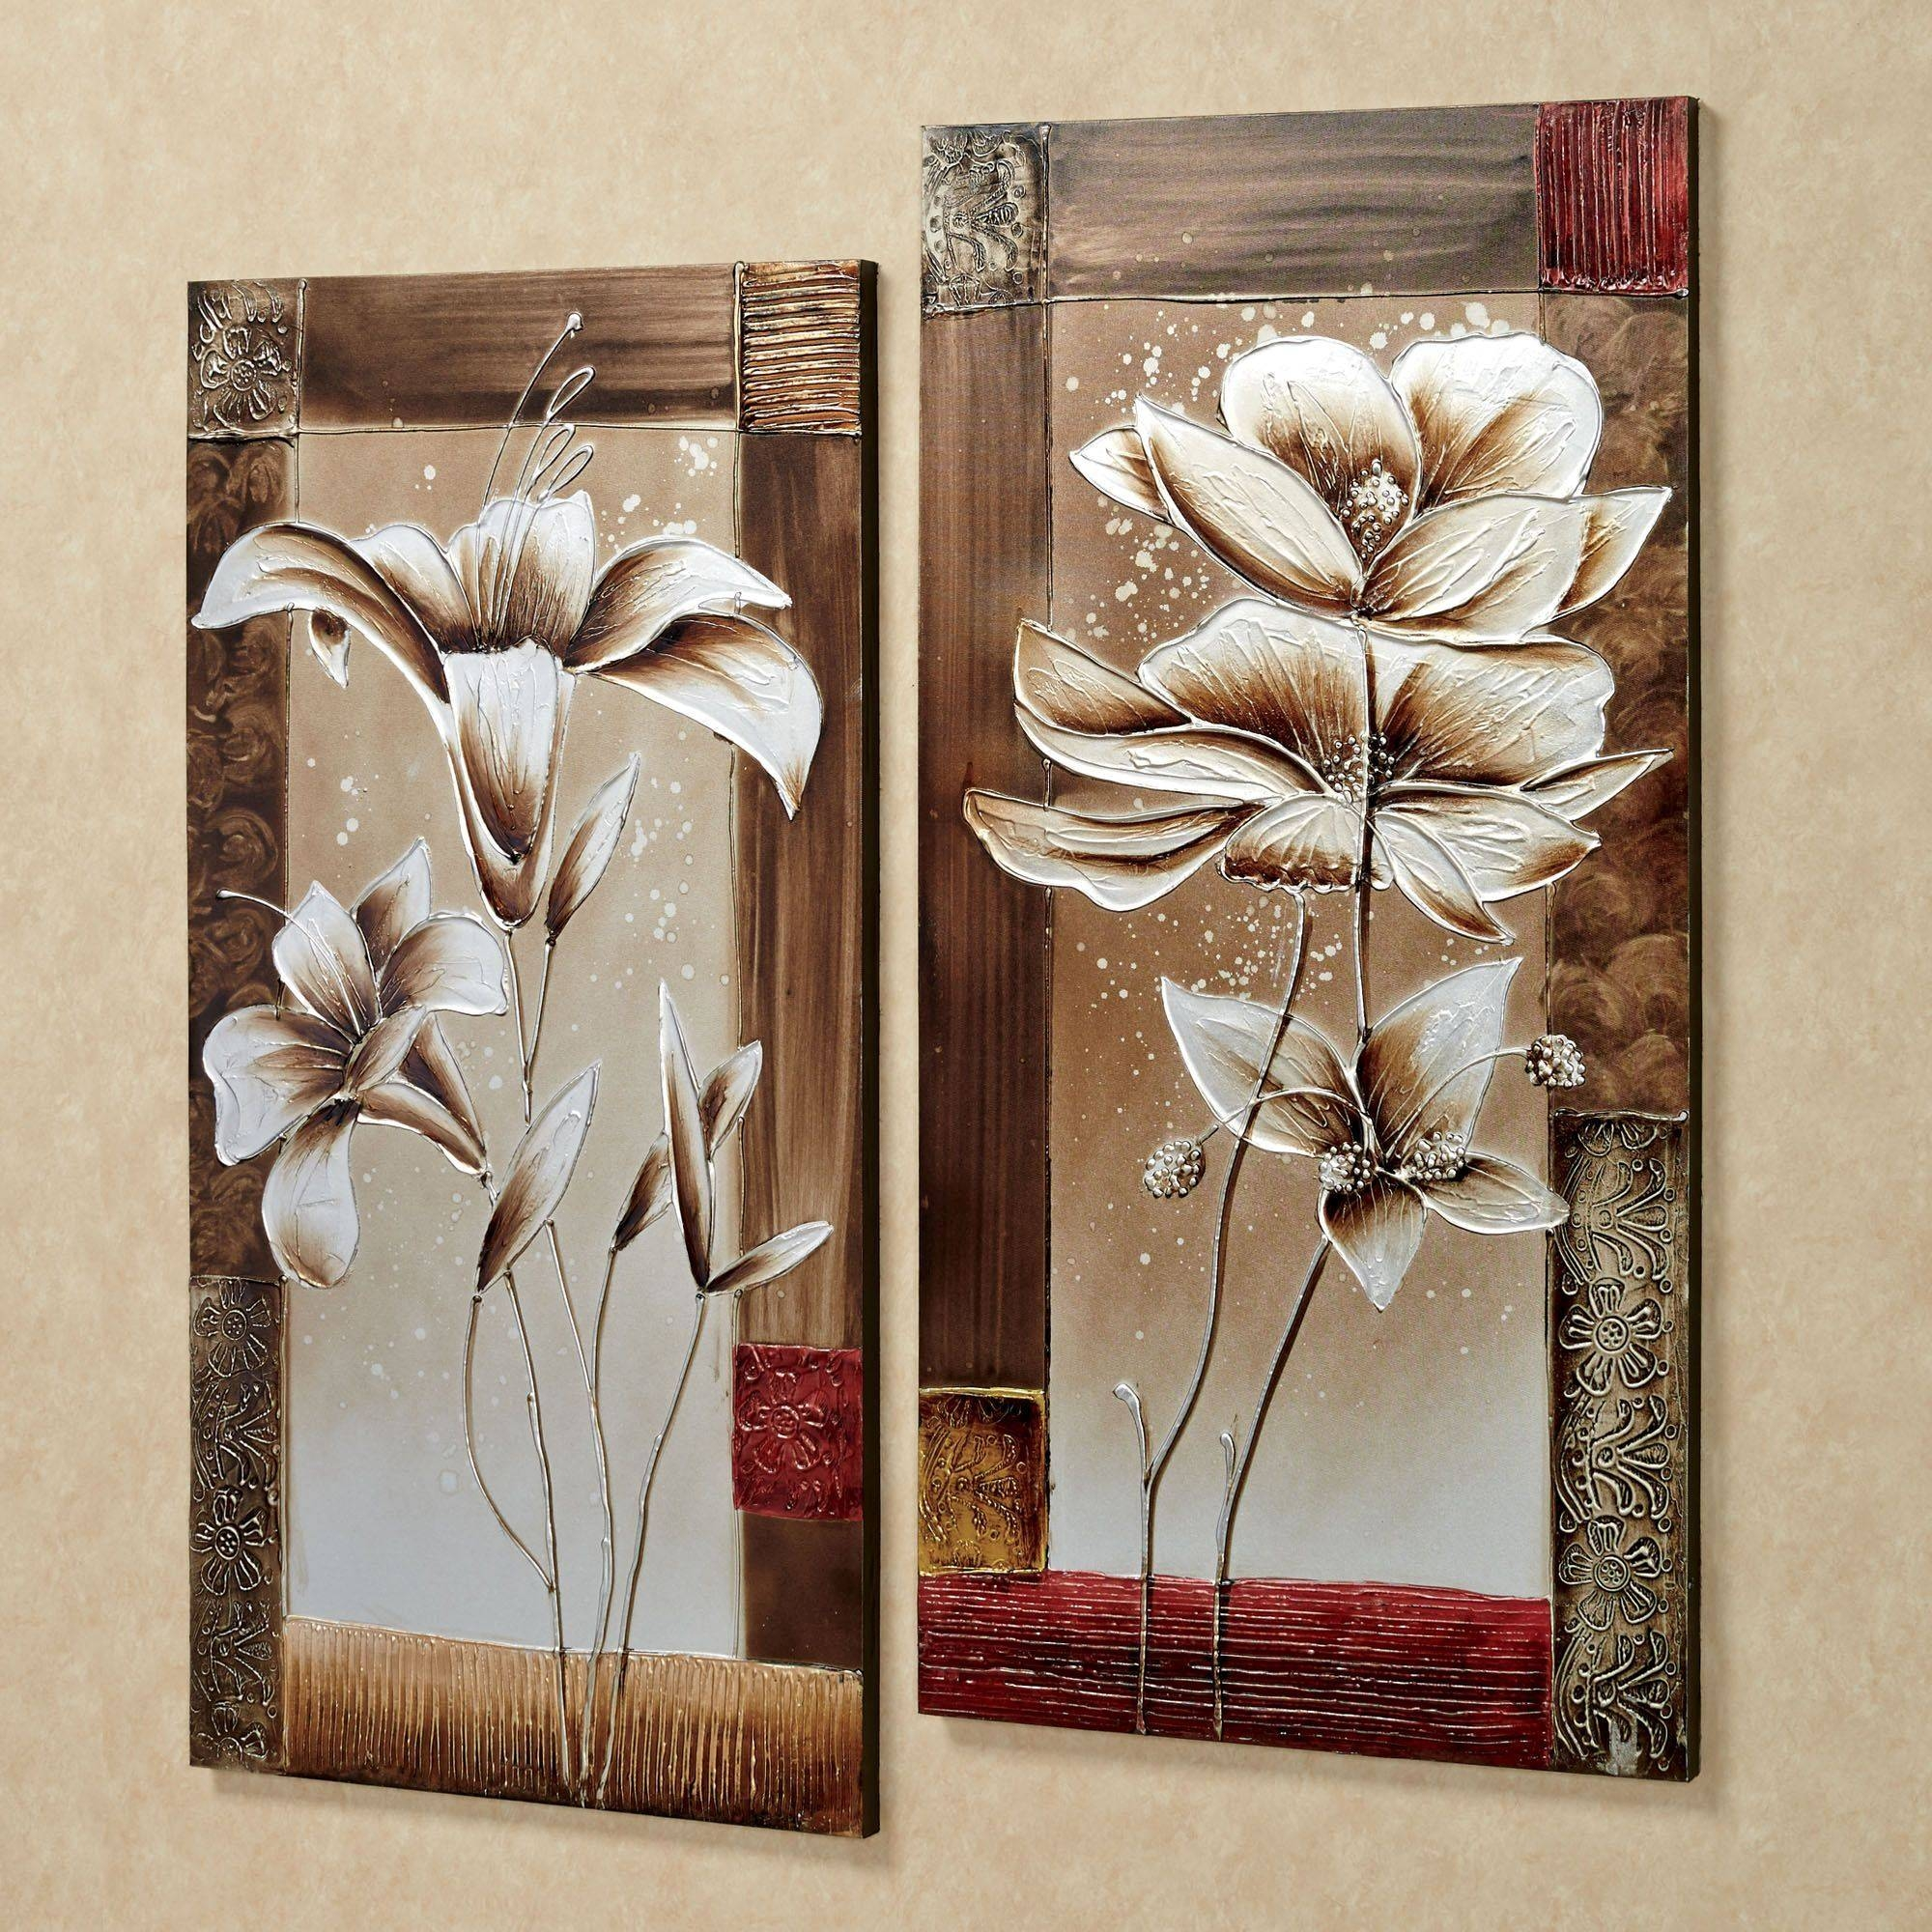 Petals Of Spring Floral Canvas Wall Art Set With Most Recently Released Floral Wall Art Canvas (View 2 of 20)